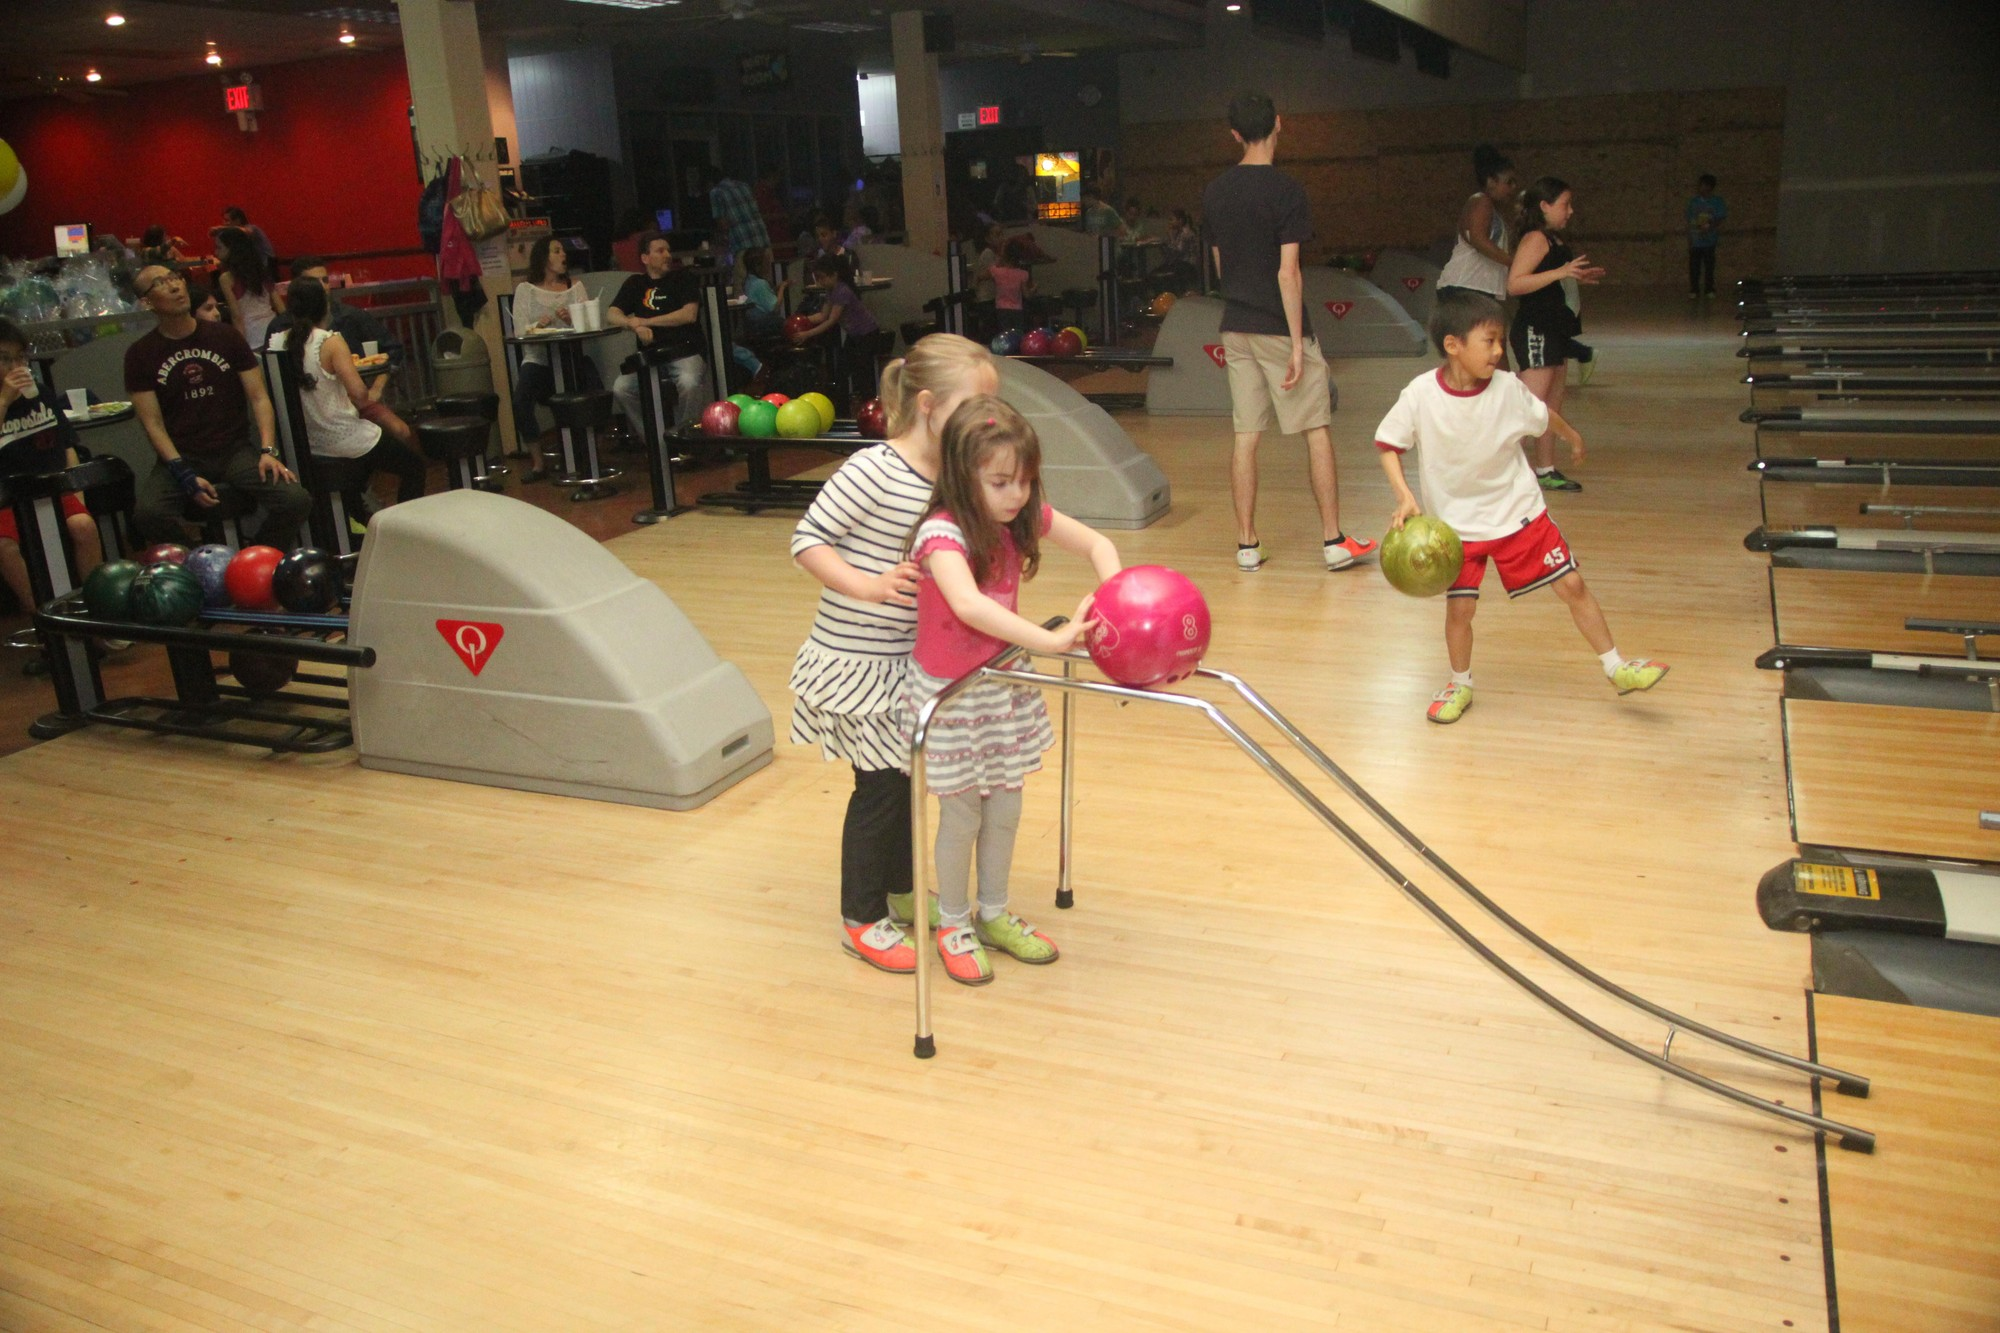 SIBSPlace supports children whose parent or sibling is suffering from cancer or another devastating illness. Erin Khankan, 7, left, helped Charlotte Formont, 5, set up to roll the bowling ball down the lane.